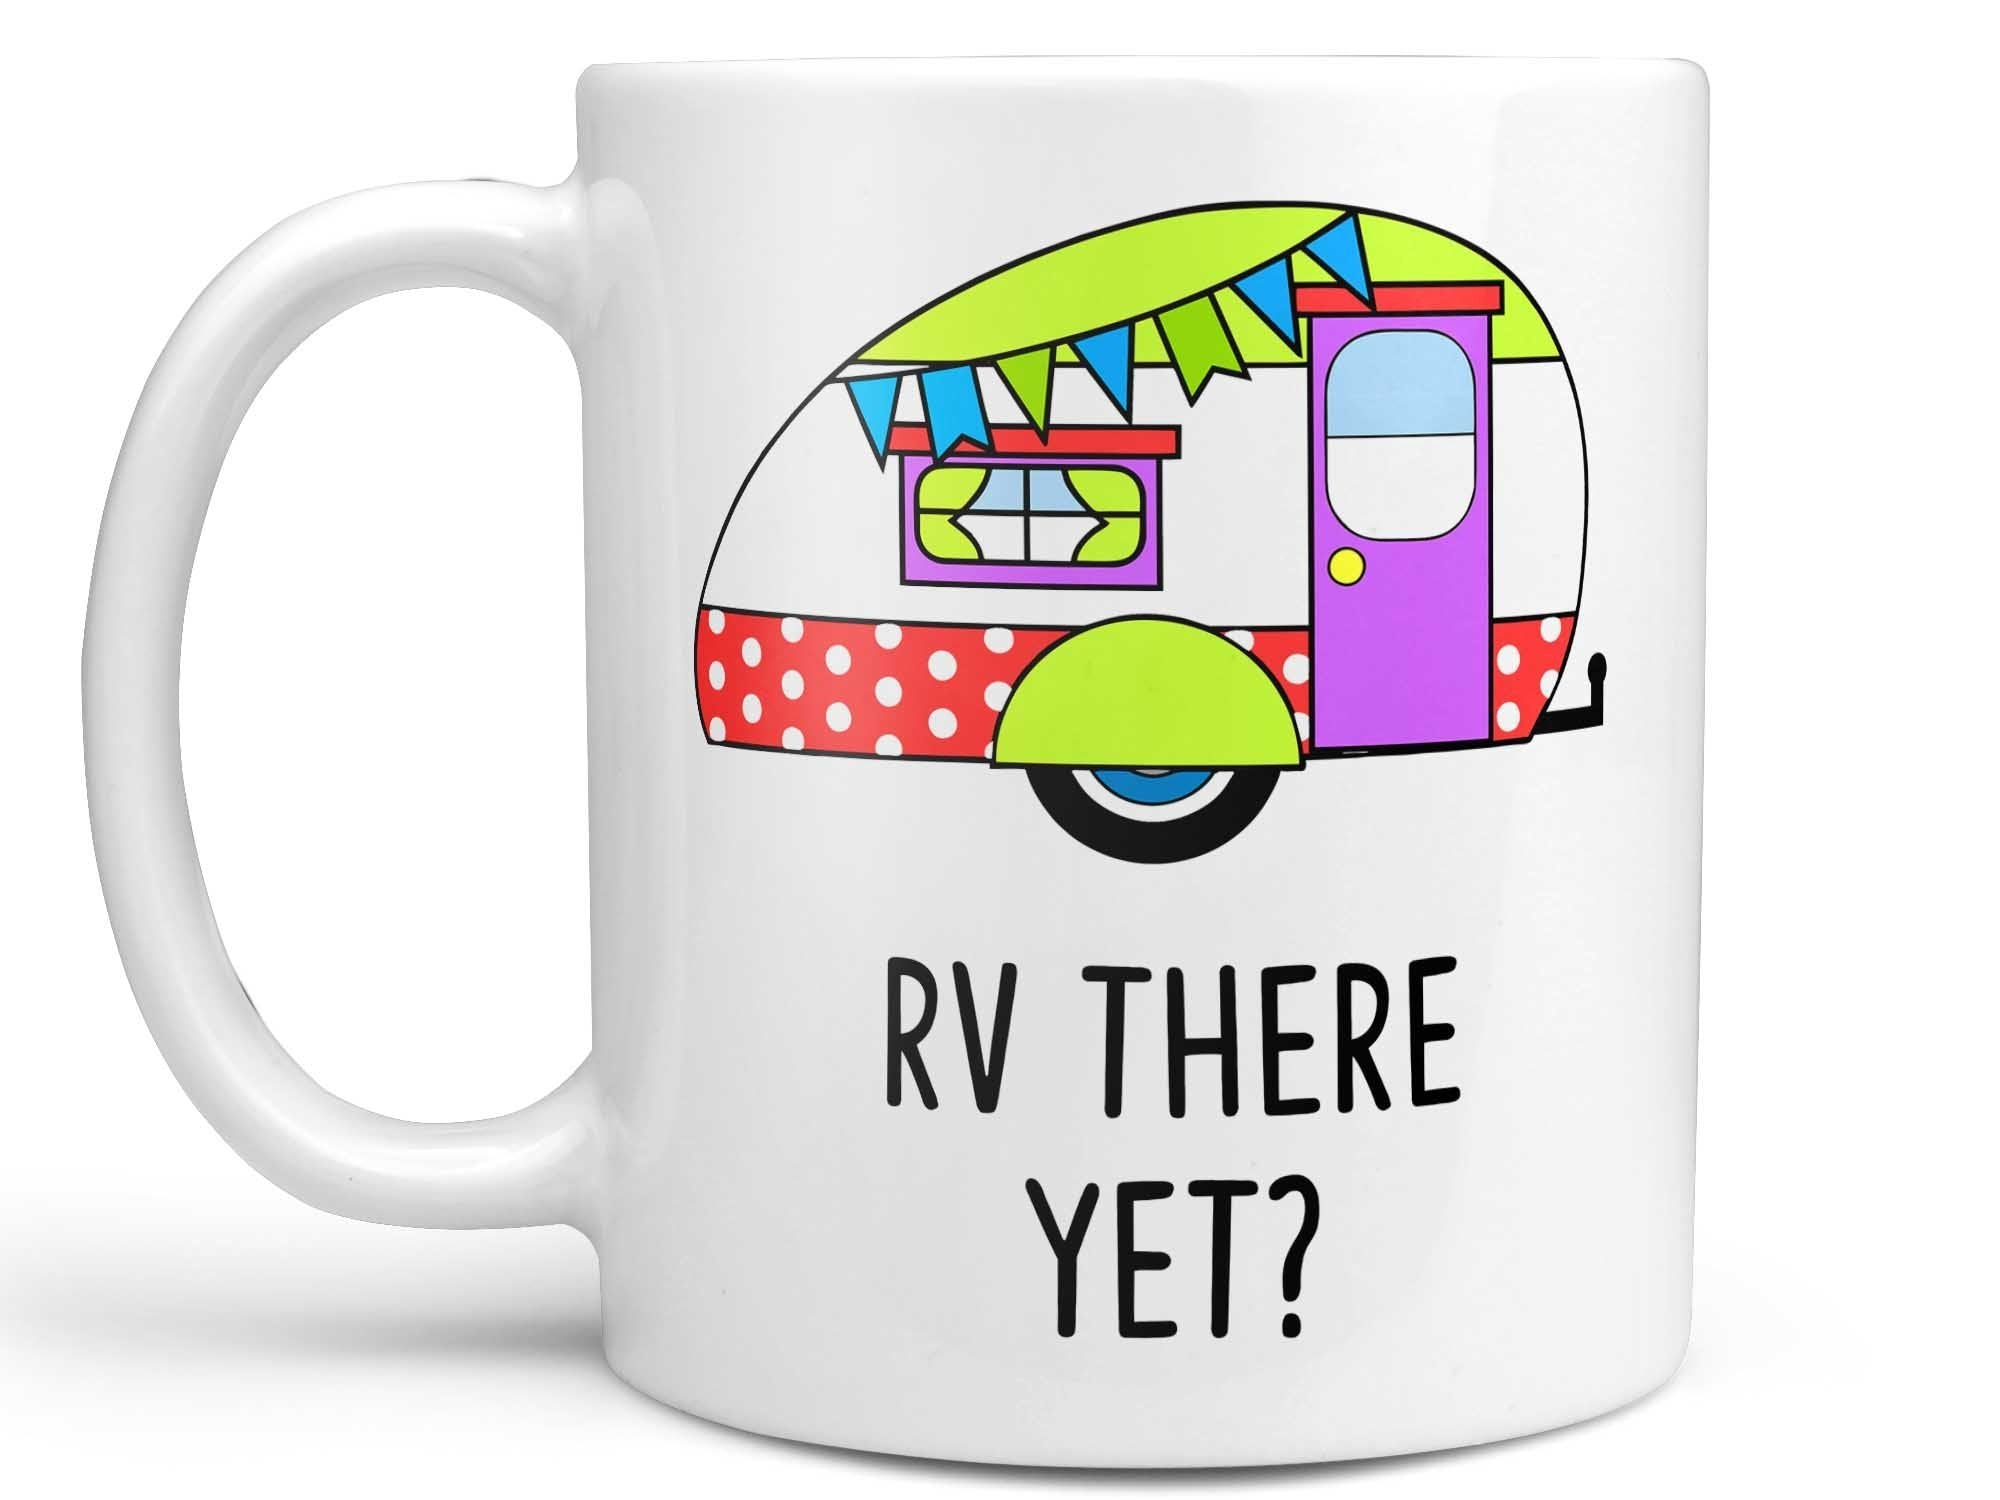 RV There Yet Coffee Mug,Coffee Mugs Never Lie,Coffee Mug